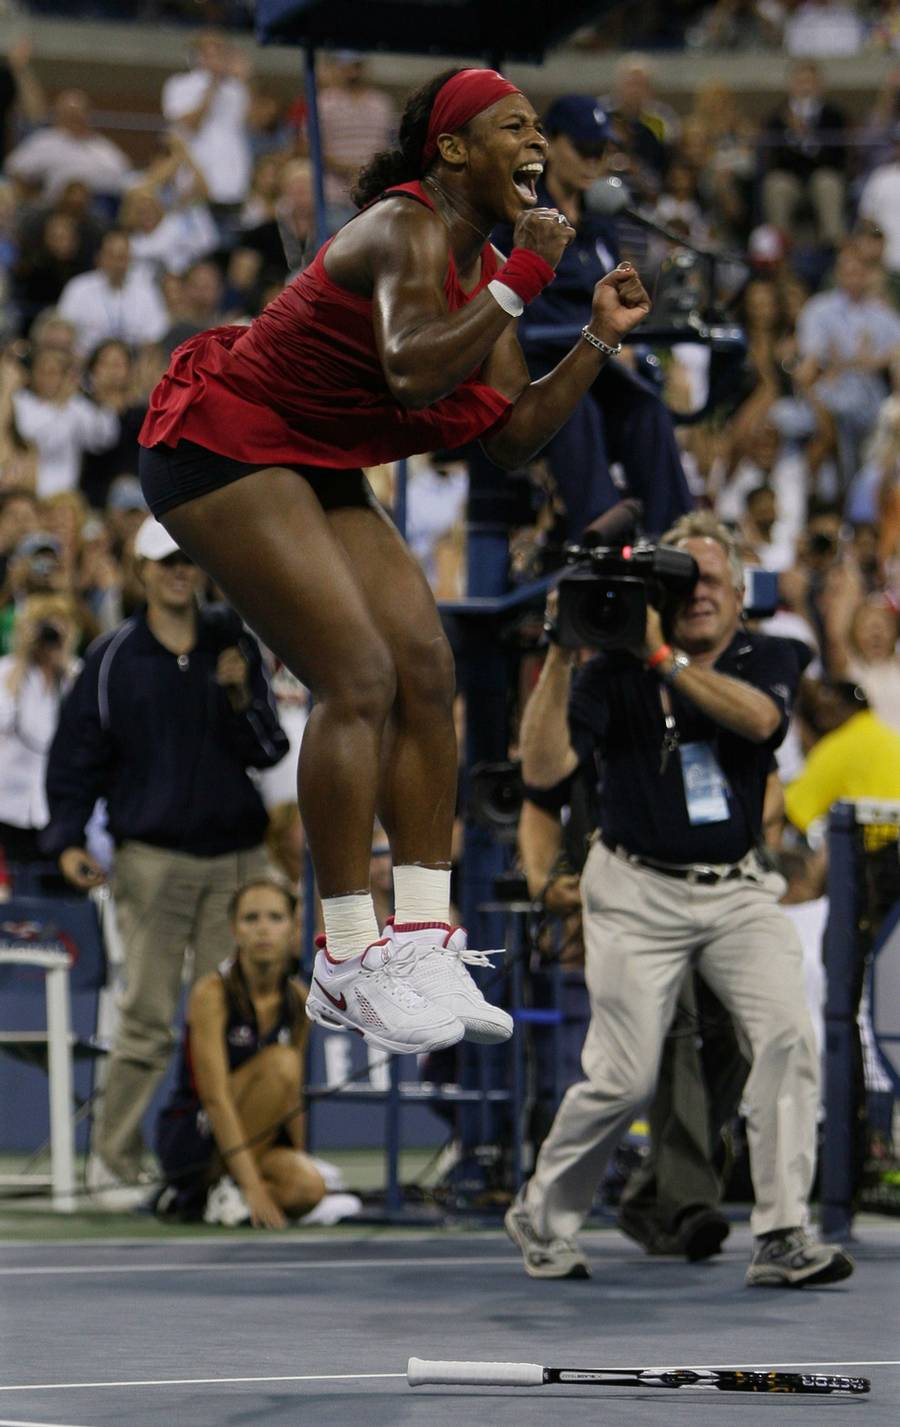 Sidst Serena Williams vandt US Open var i 2008. (Foto: AP/Julie Jacobson)